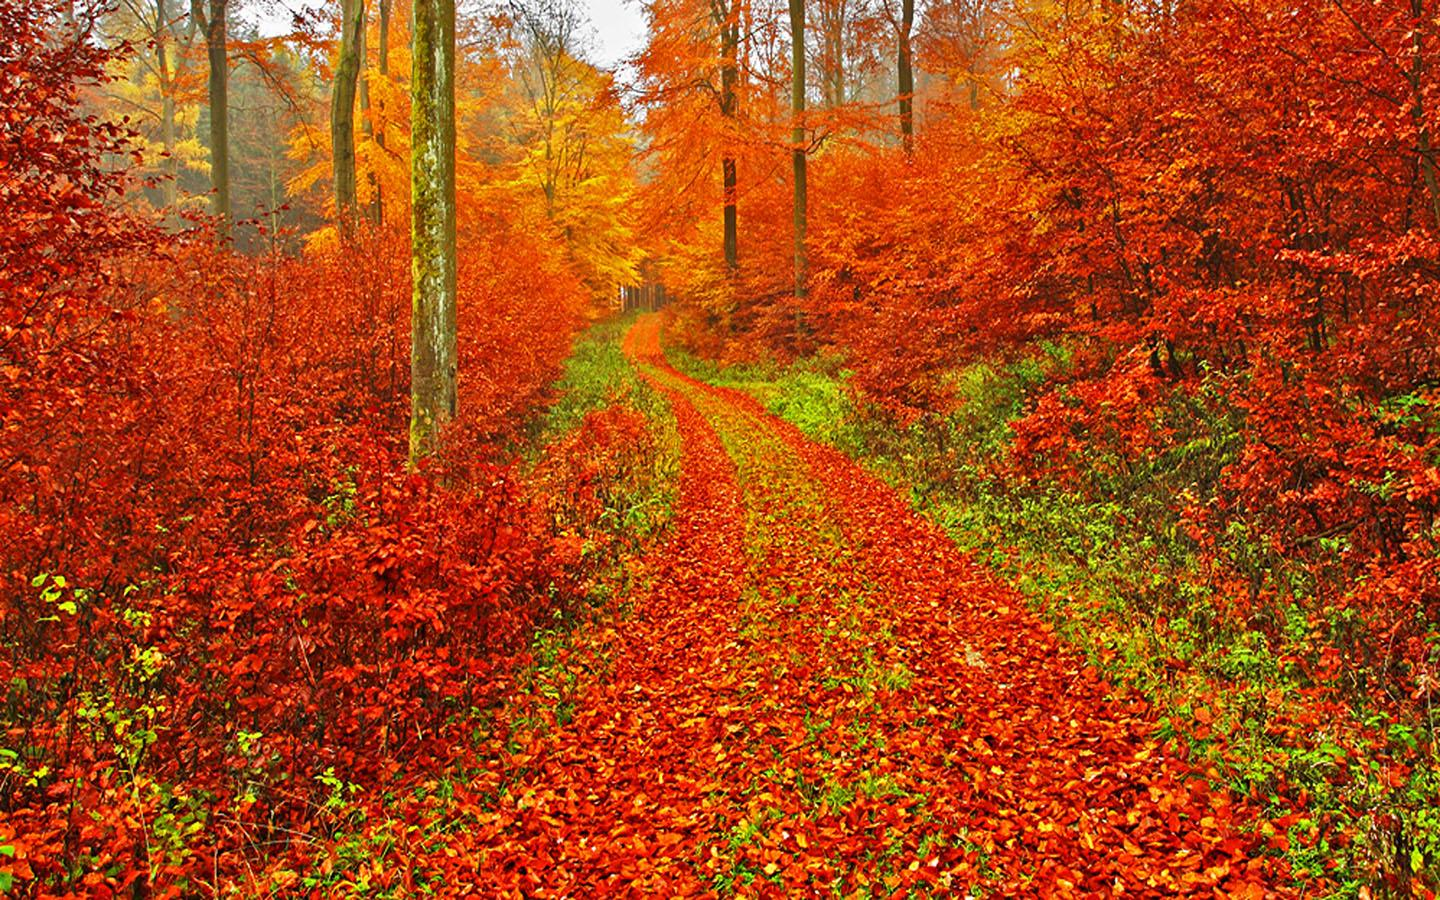 Fall Themed Wallpaper Desktop Autumn Wallpaper Android Apps On Google Play